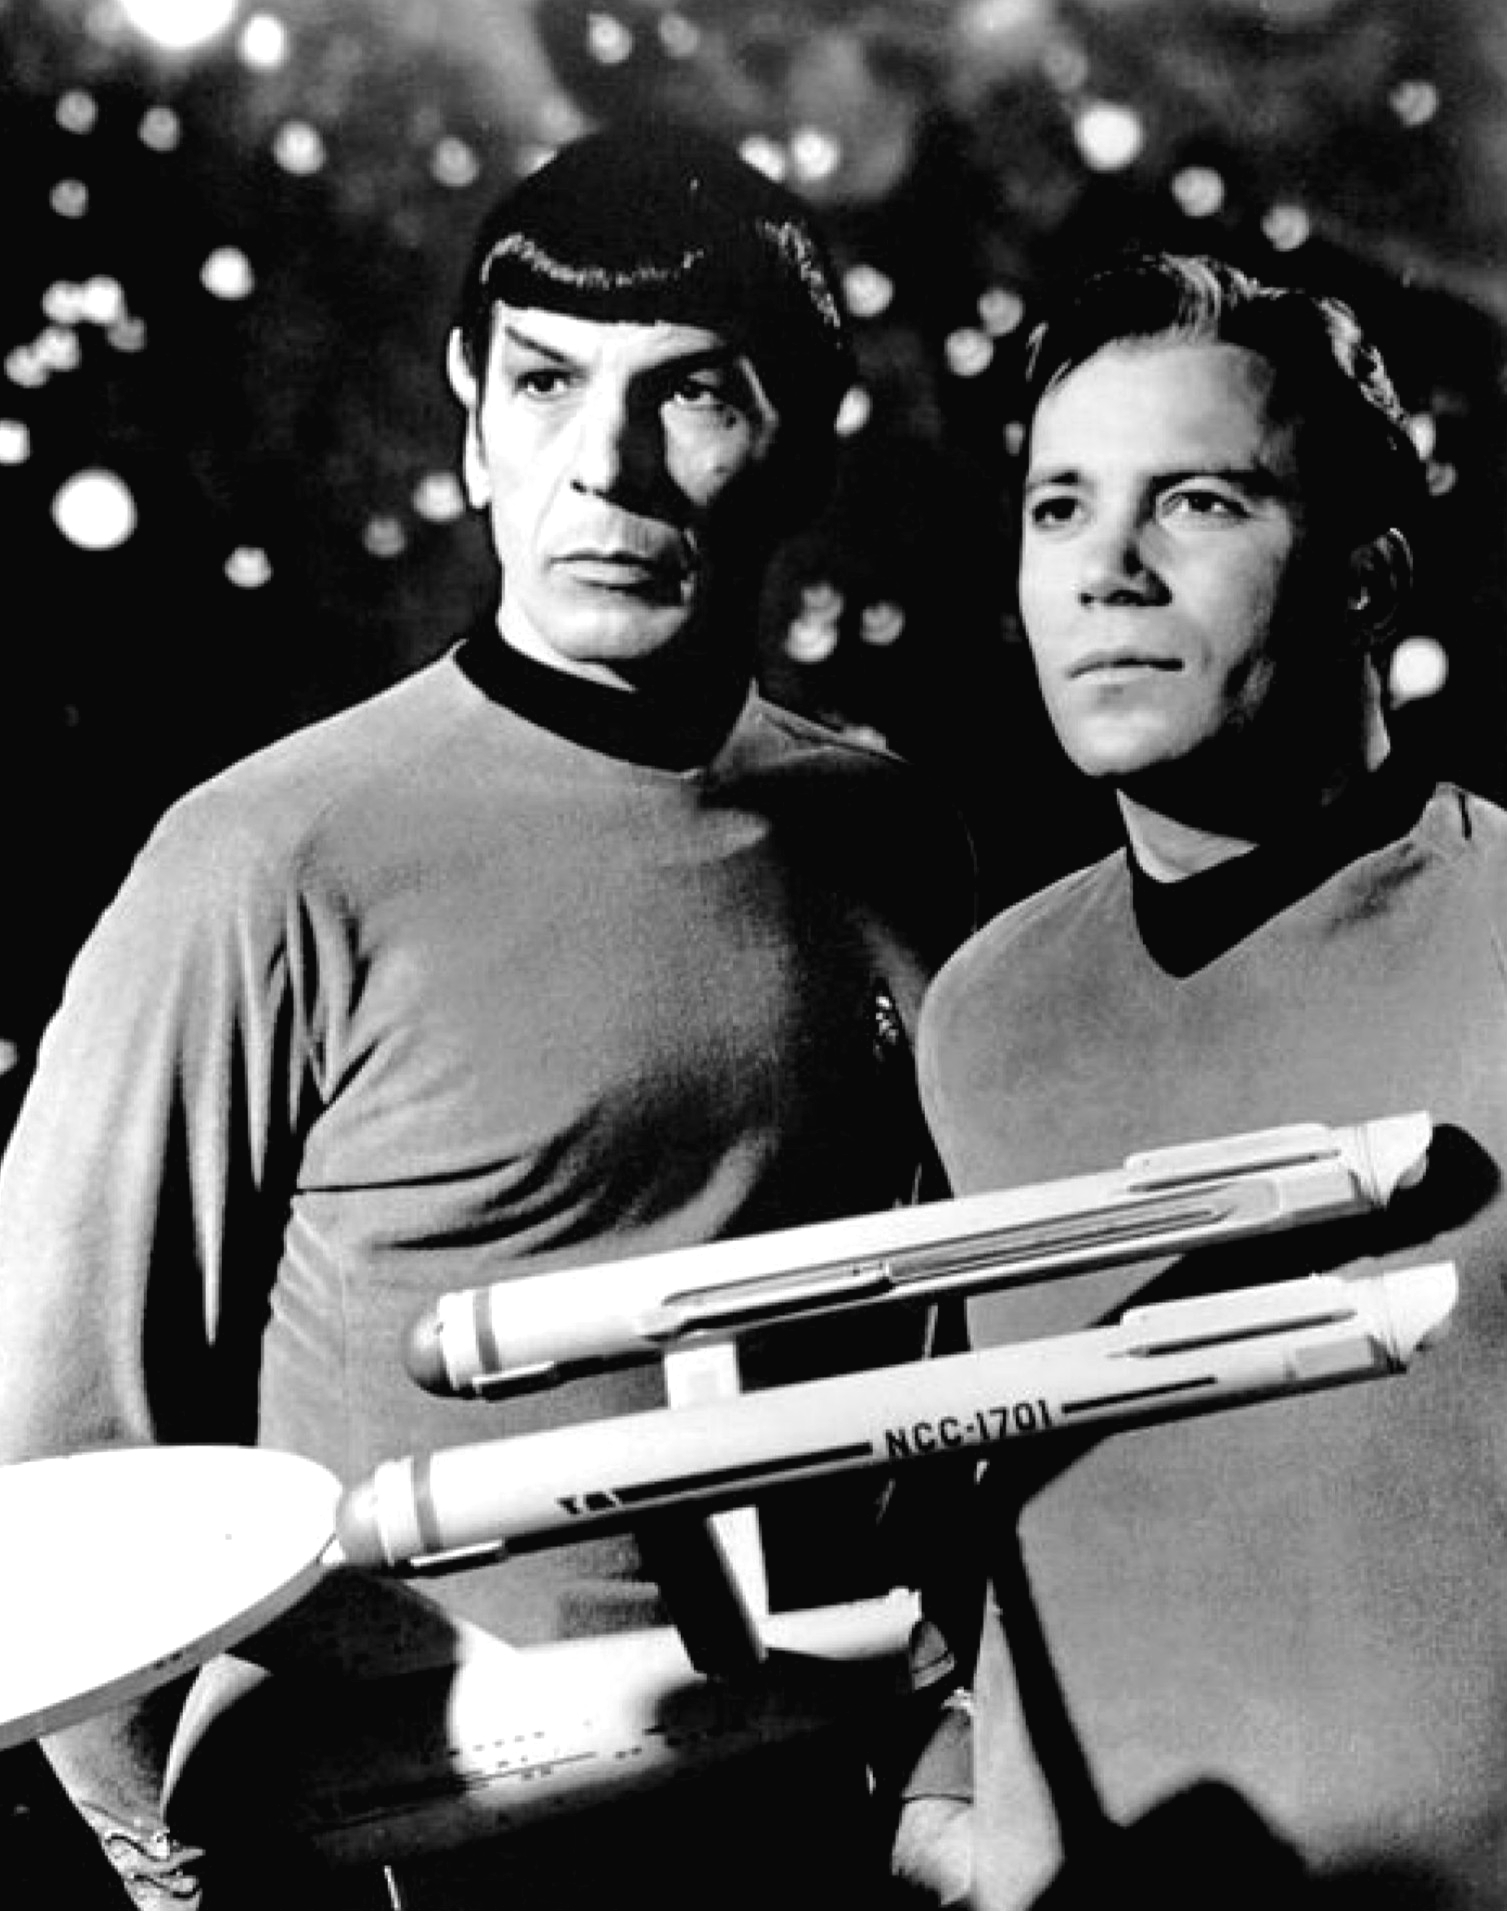 Tech lives long and prospers as Star Trek turns 50